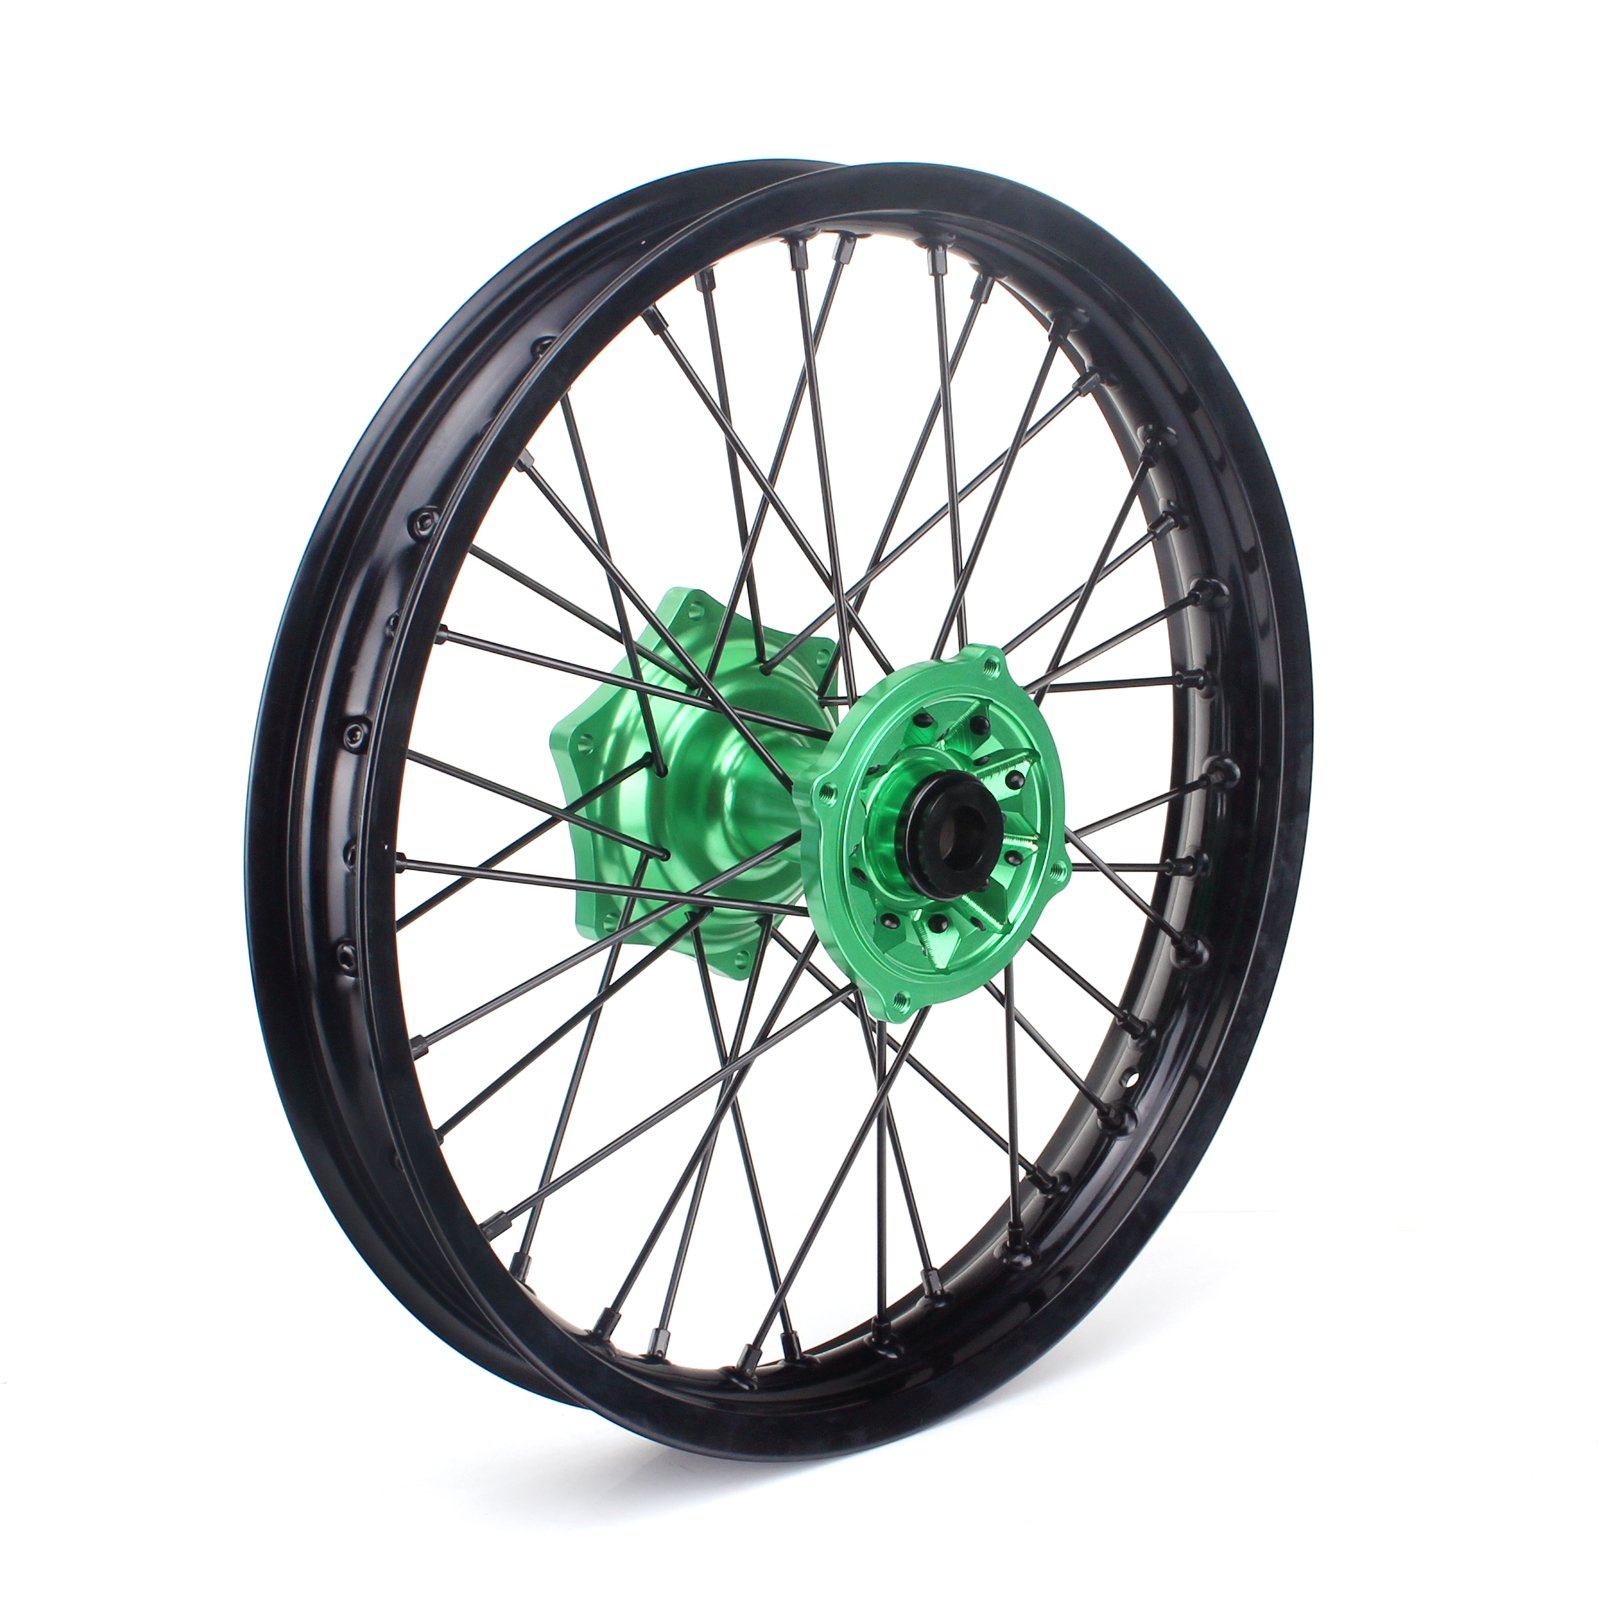 TARAZON 19 x 2.15 MX Complete Rear Wheel Kit Black Rim Green Hub for Kawasaki KX125 KX250 2003-2013 KX250F 2004-2017 KX450F 2006-2017 klx450 2007-2013